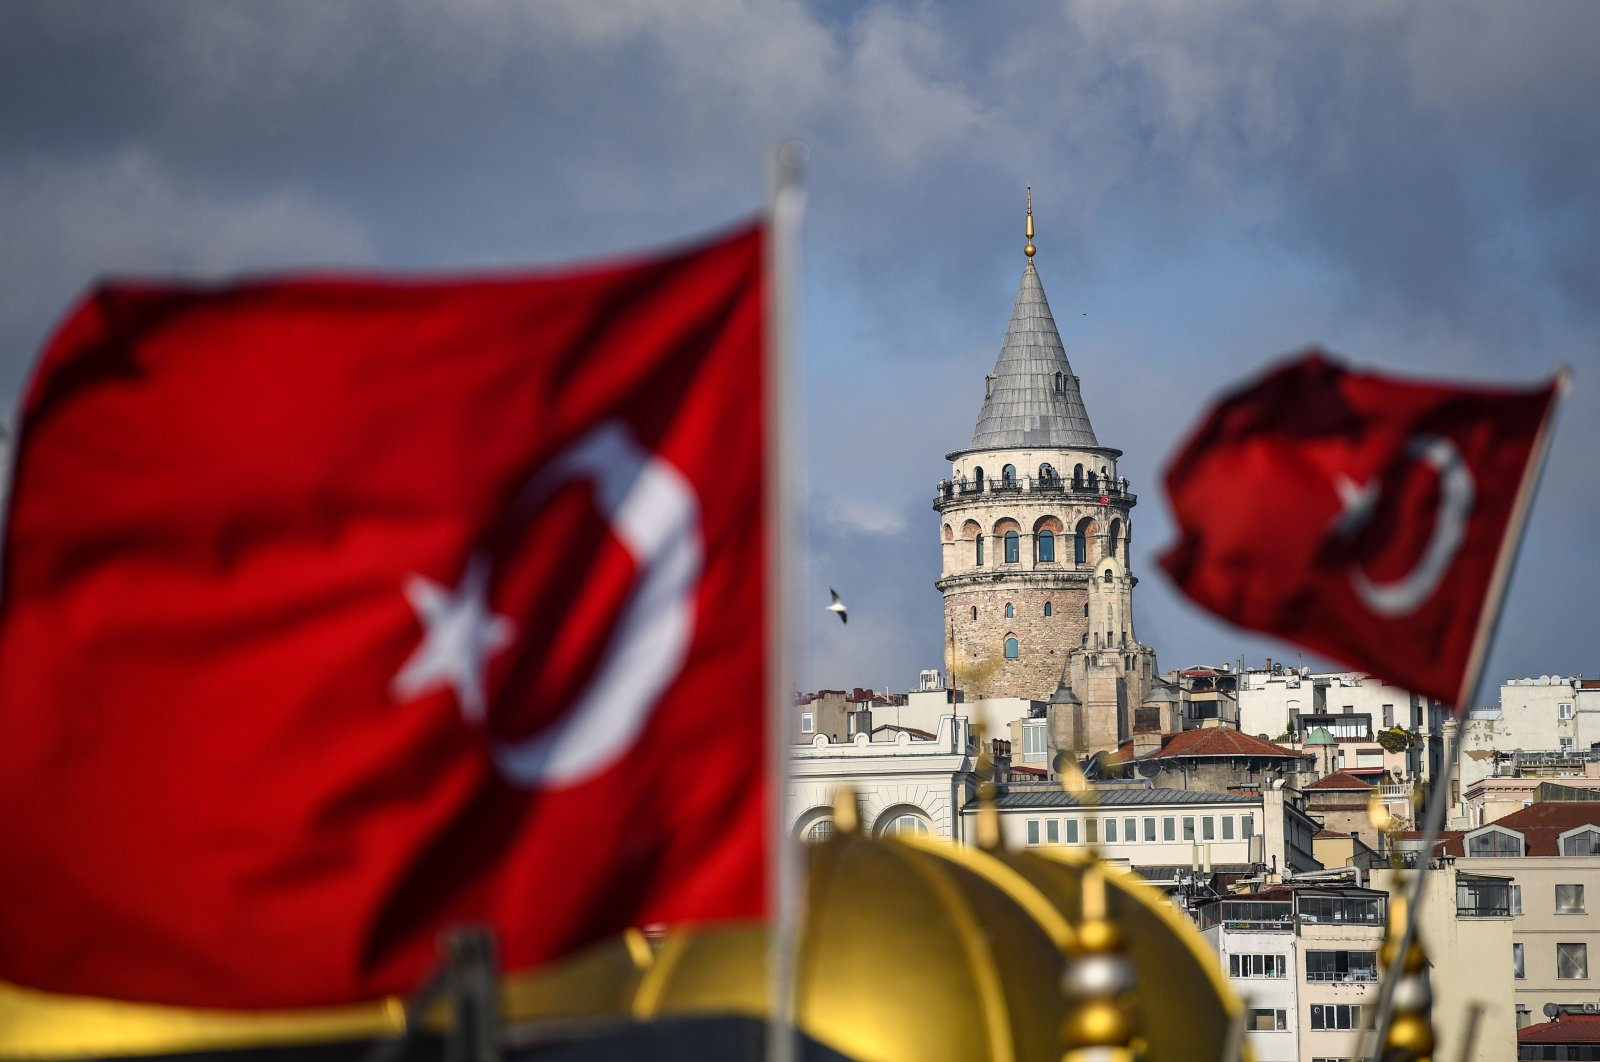 The Galata Tower seen behind Turkish national flags during a curfew against the spread of the coronavirus, Istanbul, Turkey, Dec. 6, 2020. (AFP Photo)